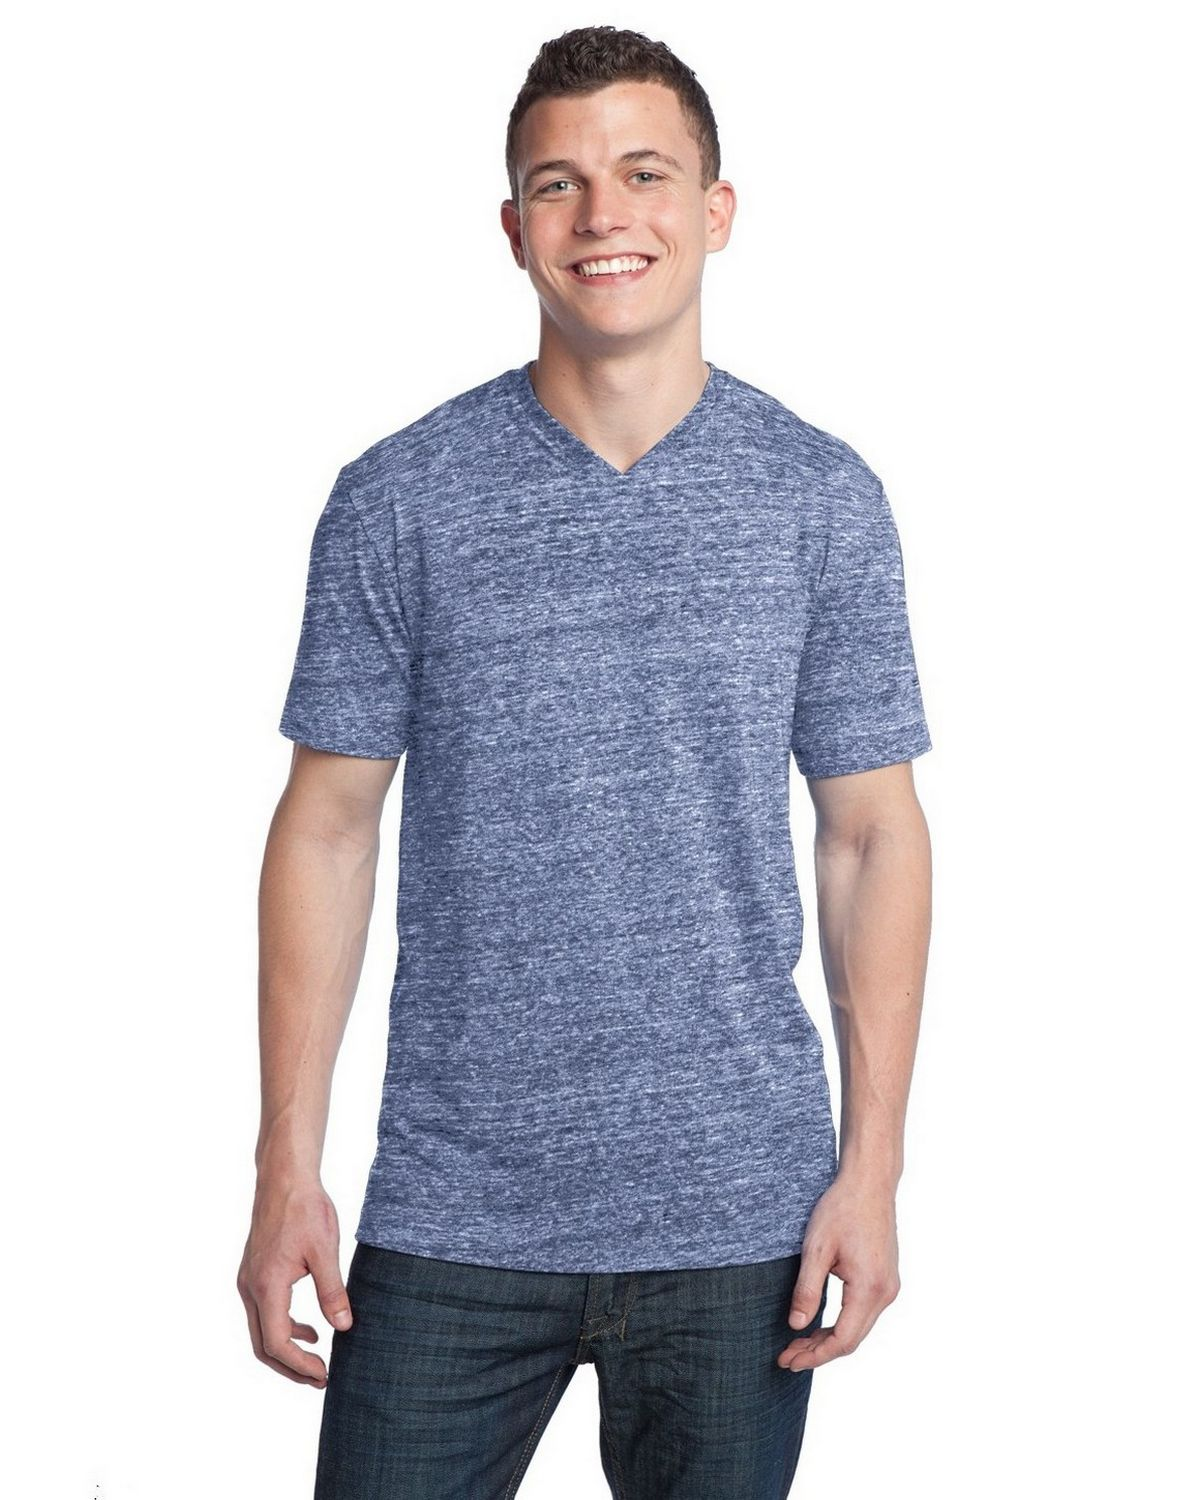 District DT142V Tri-Blend V-Neck Tee - Navy Heather - XS DT142V